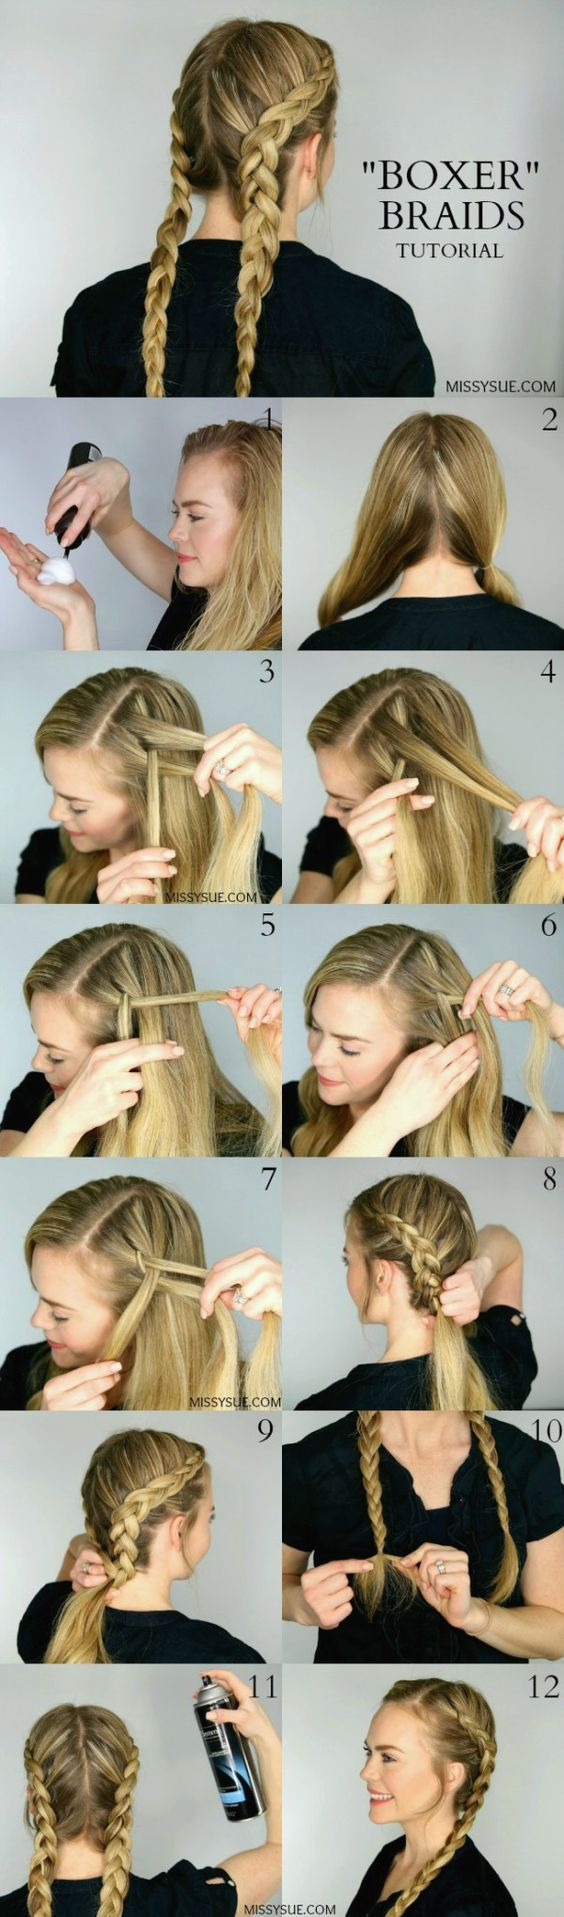 Phenomenal 1000 Ideas About Braided Hair Tutorials On Pinterest Braided Short Hairstyles Gunalazisus